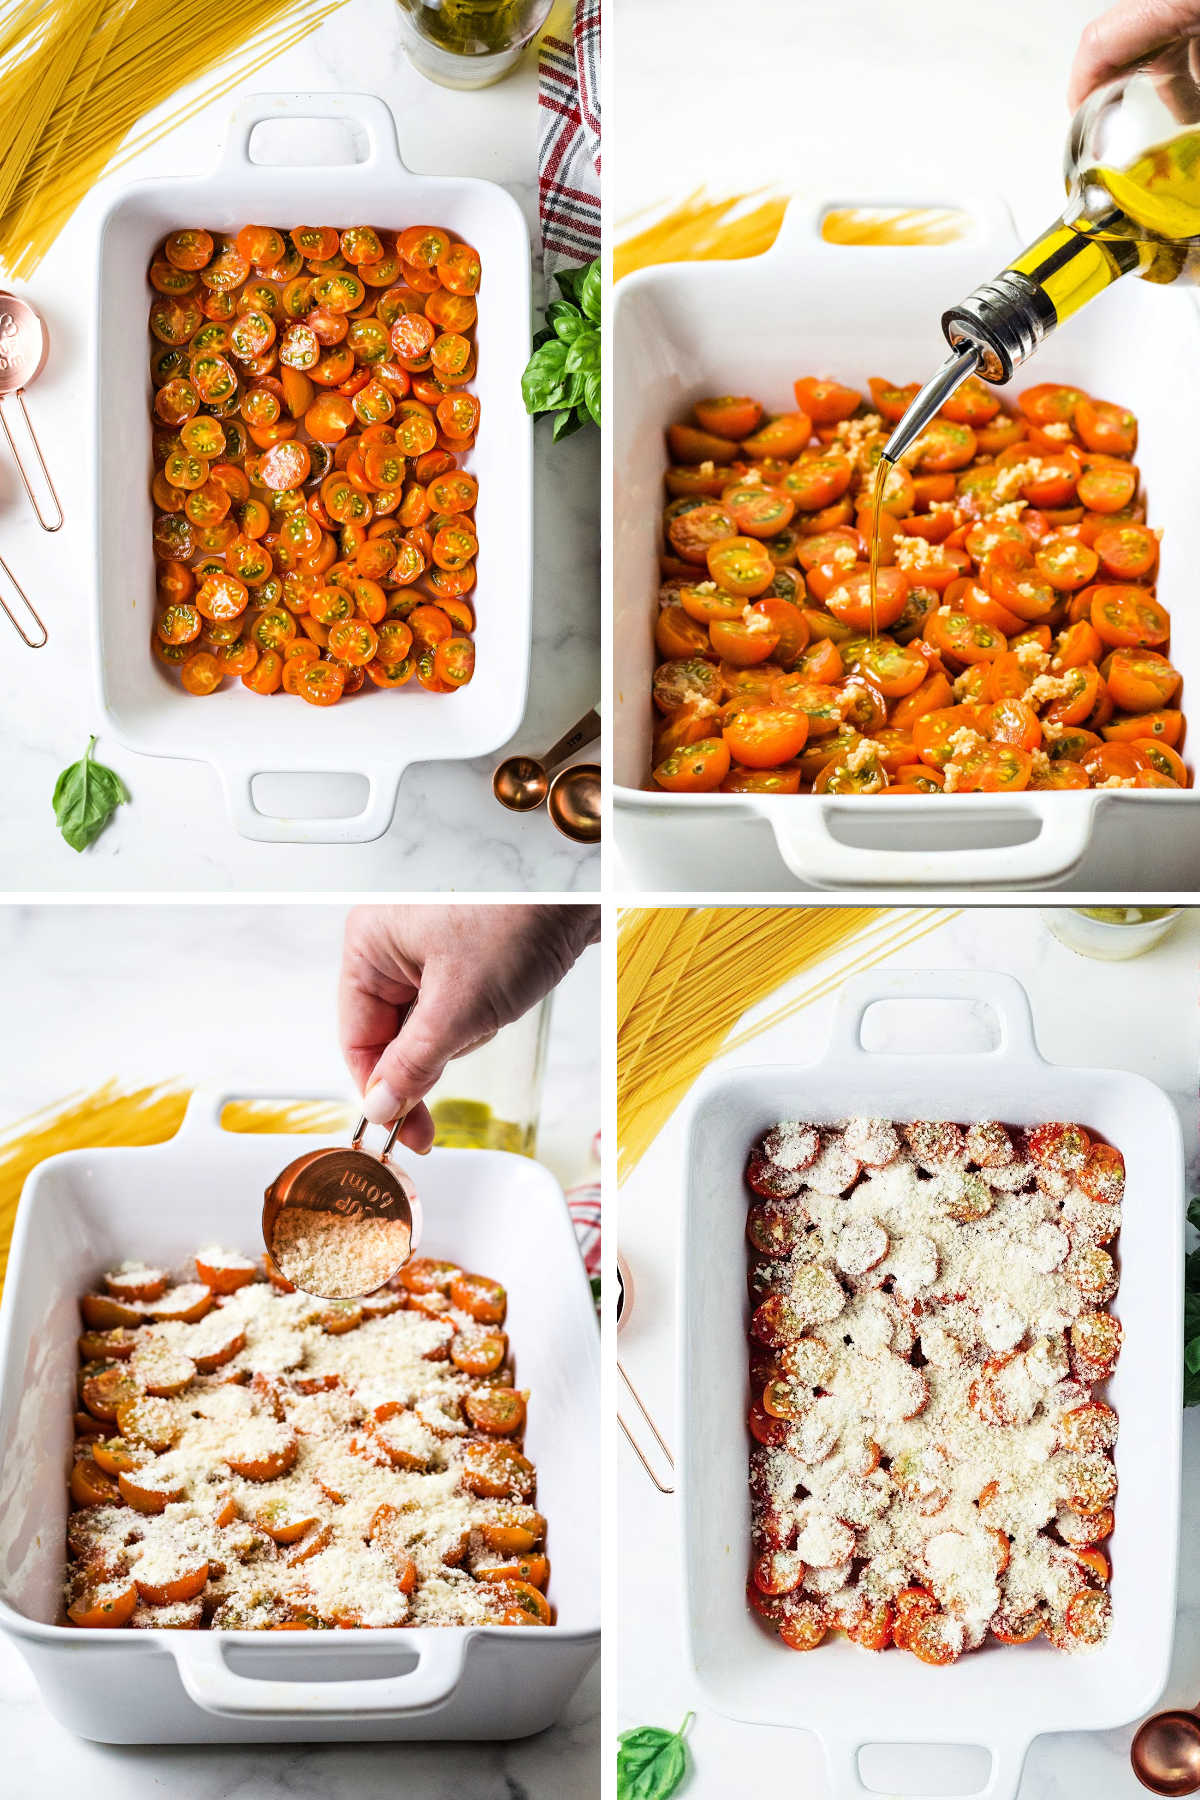 process for roasting cherry tomatoes: cut in half and place in baking dish; drizzle with olive oil; sprinkle with parmesan cheese and panko bread crumbs.